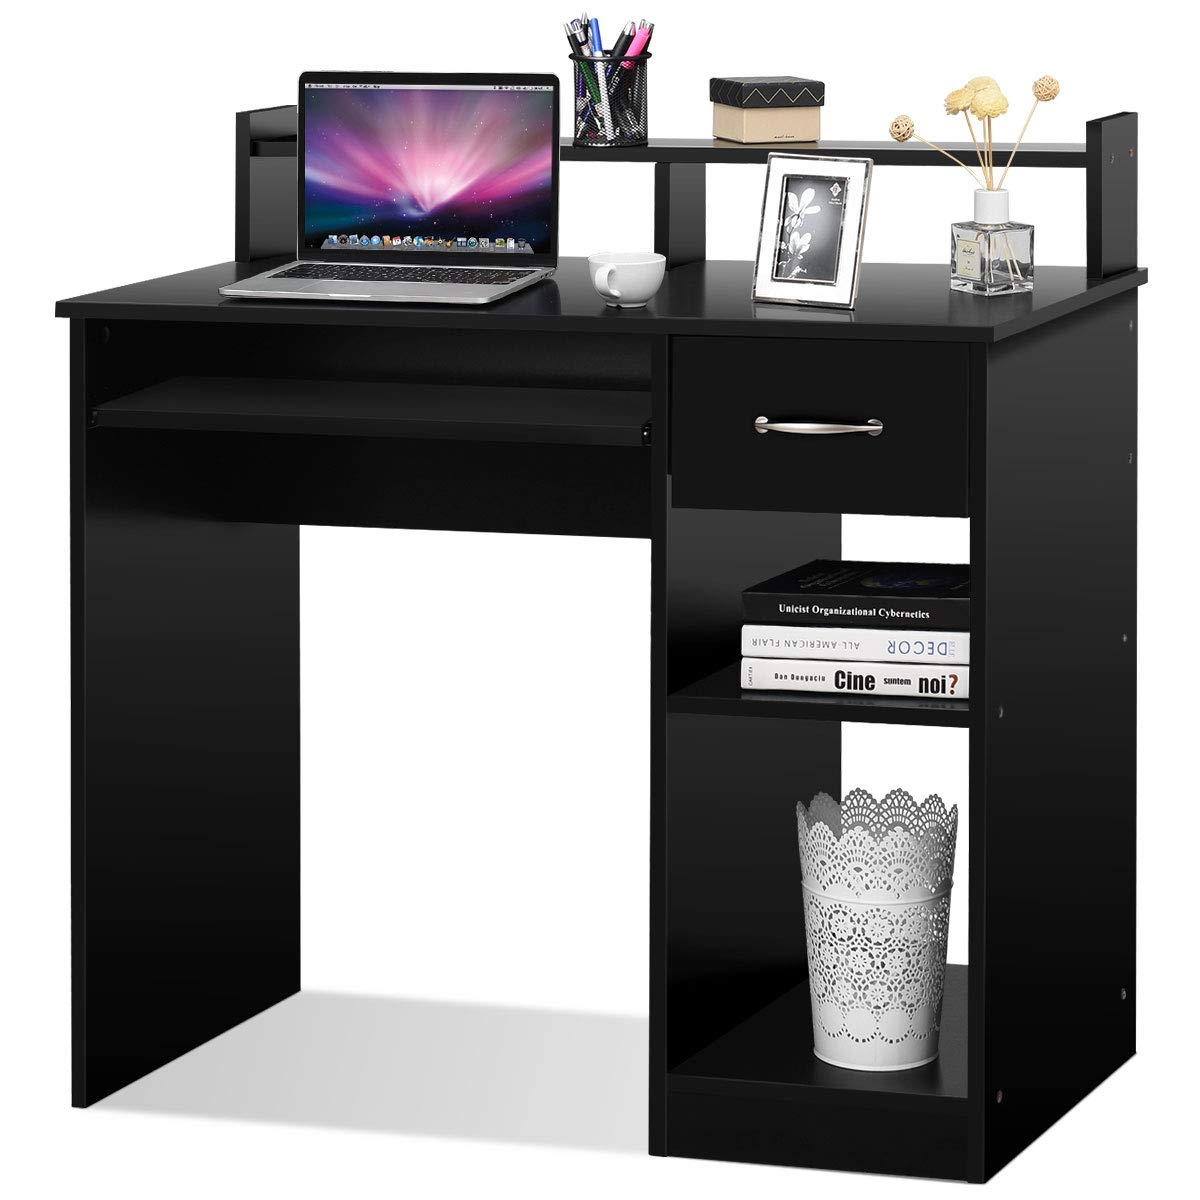 Tangkula computer desk modern home office furniture pc laptop workstation compact space saving computer table laptop table with pull out keyboard tray